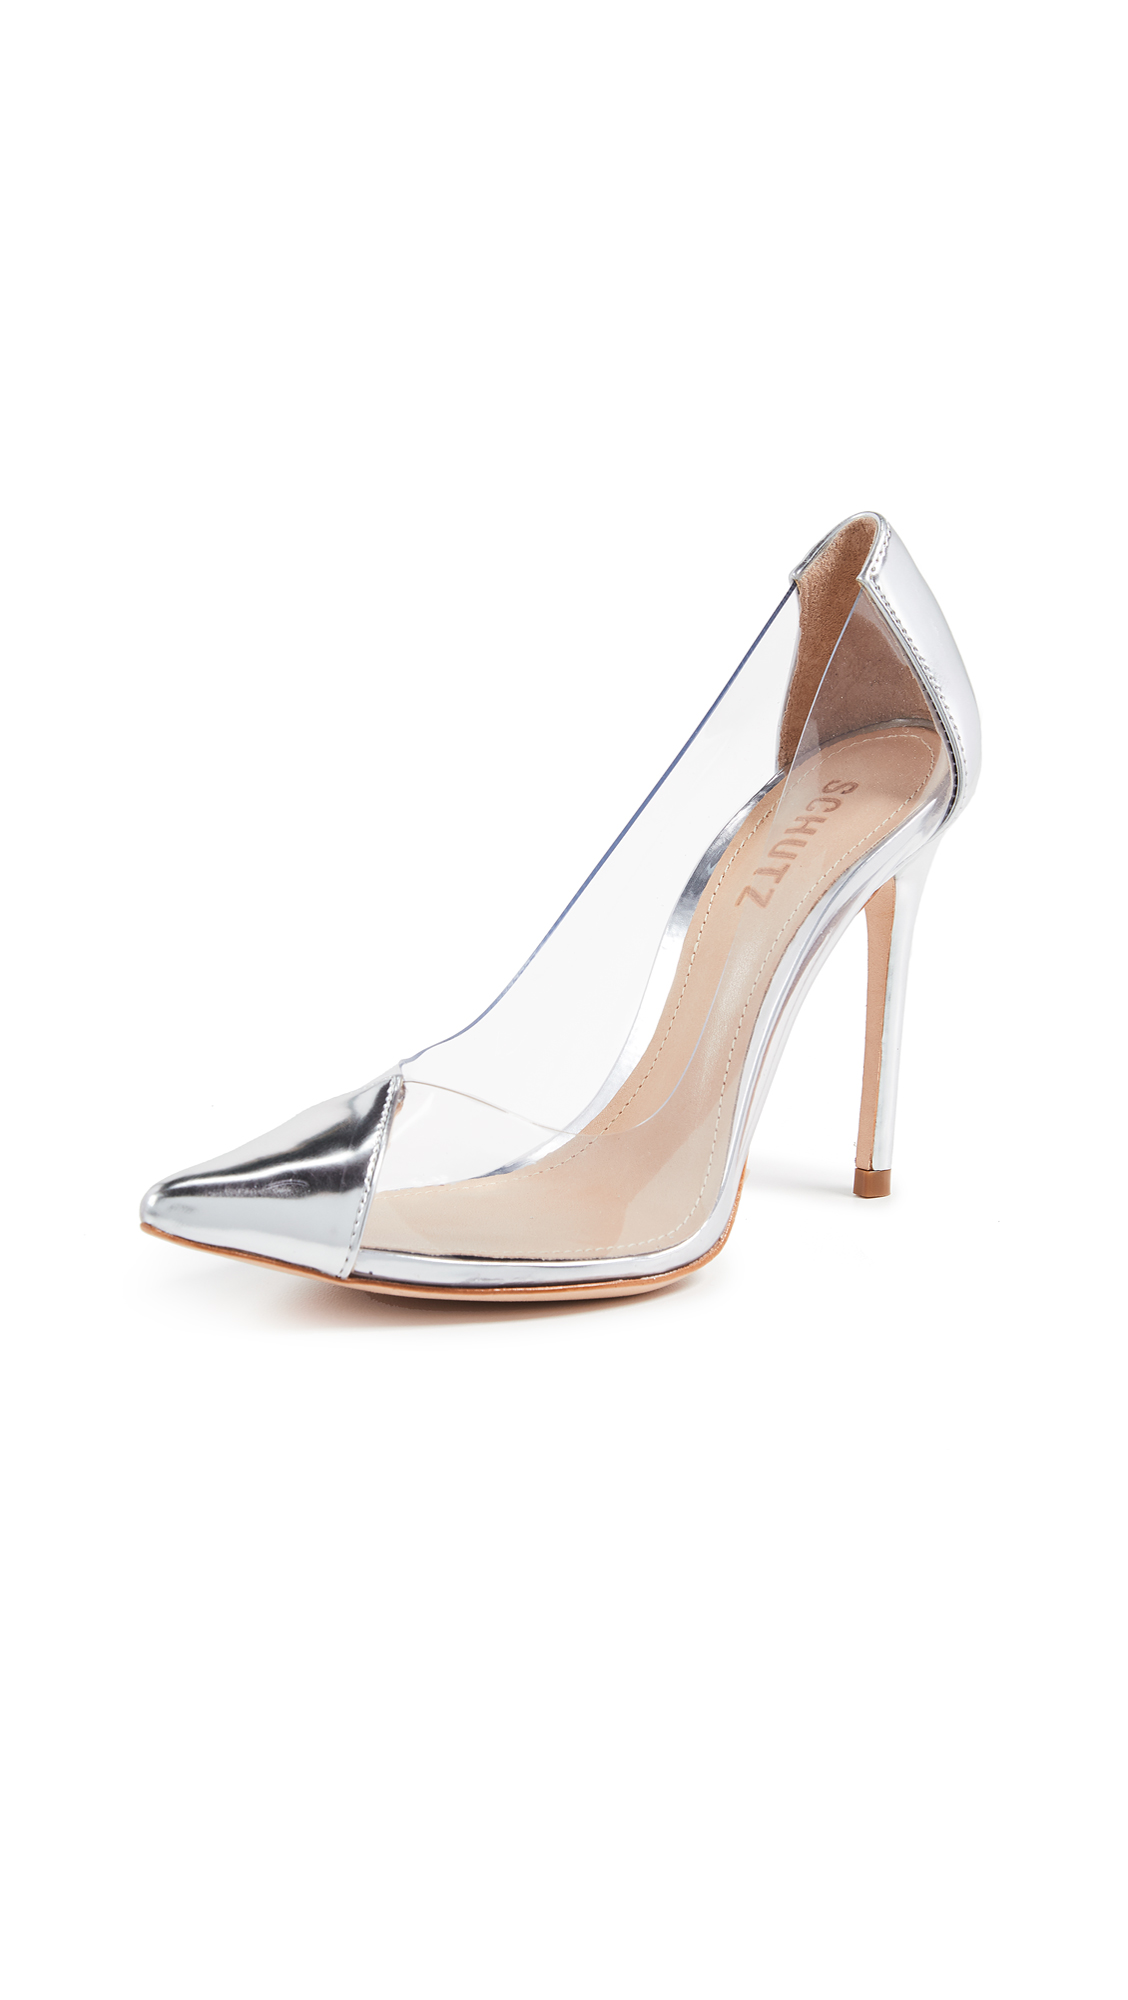 Schutz Cendi Point Toe Vinyl Pumps - Prata